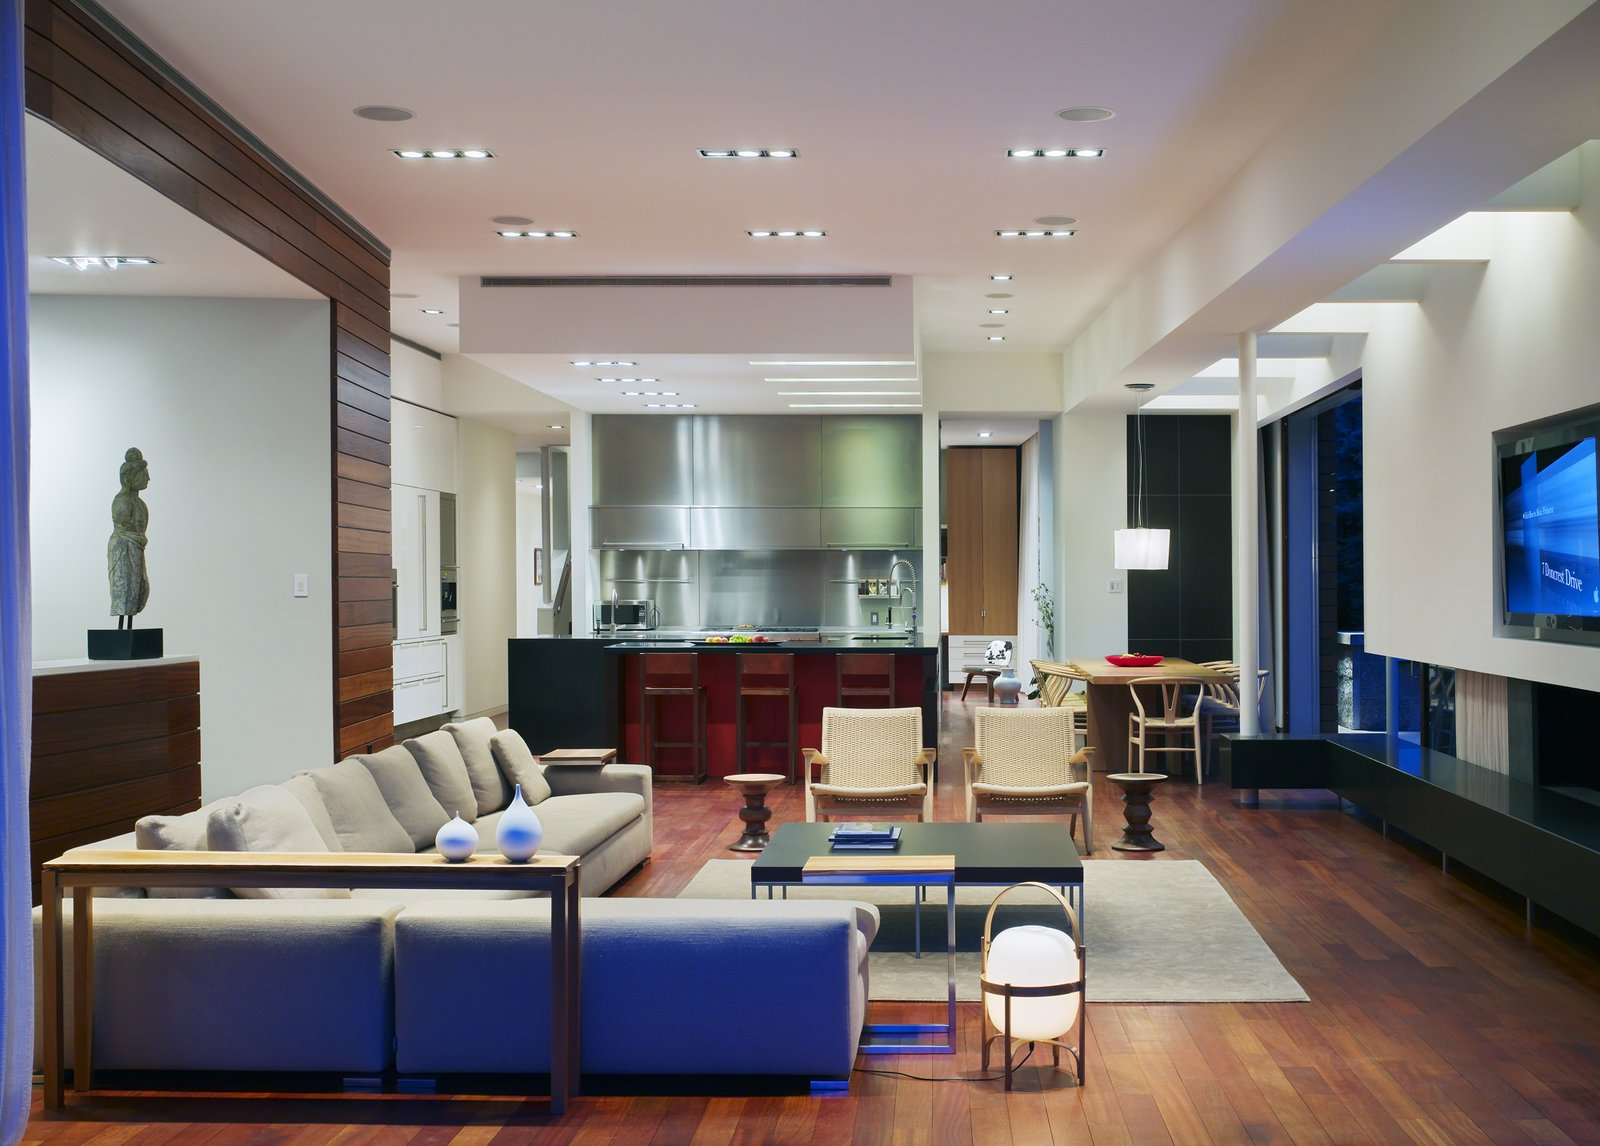 The informal family room sits in the same space as the kitchen.